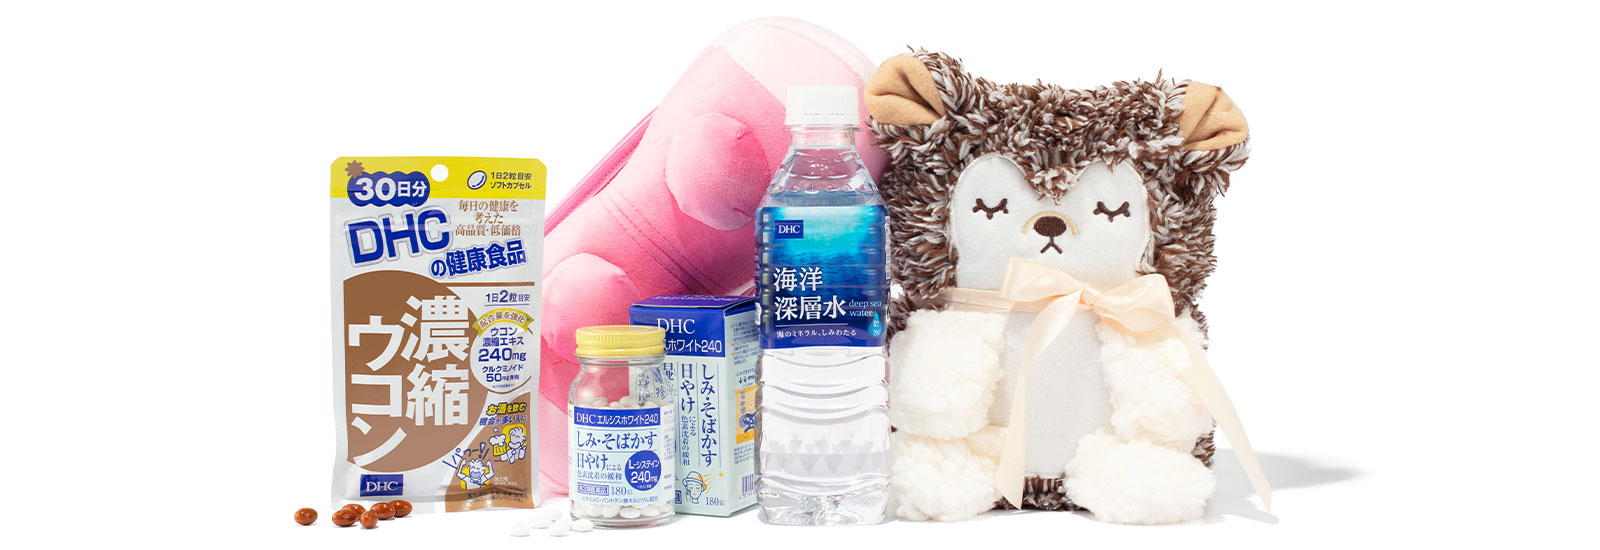 We Tried DHC Products Only Available in Japan!